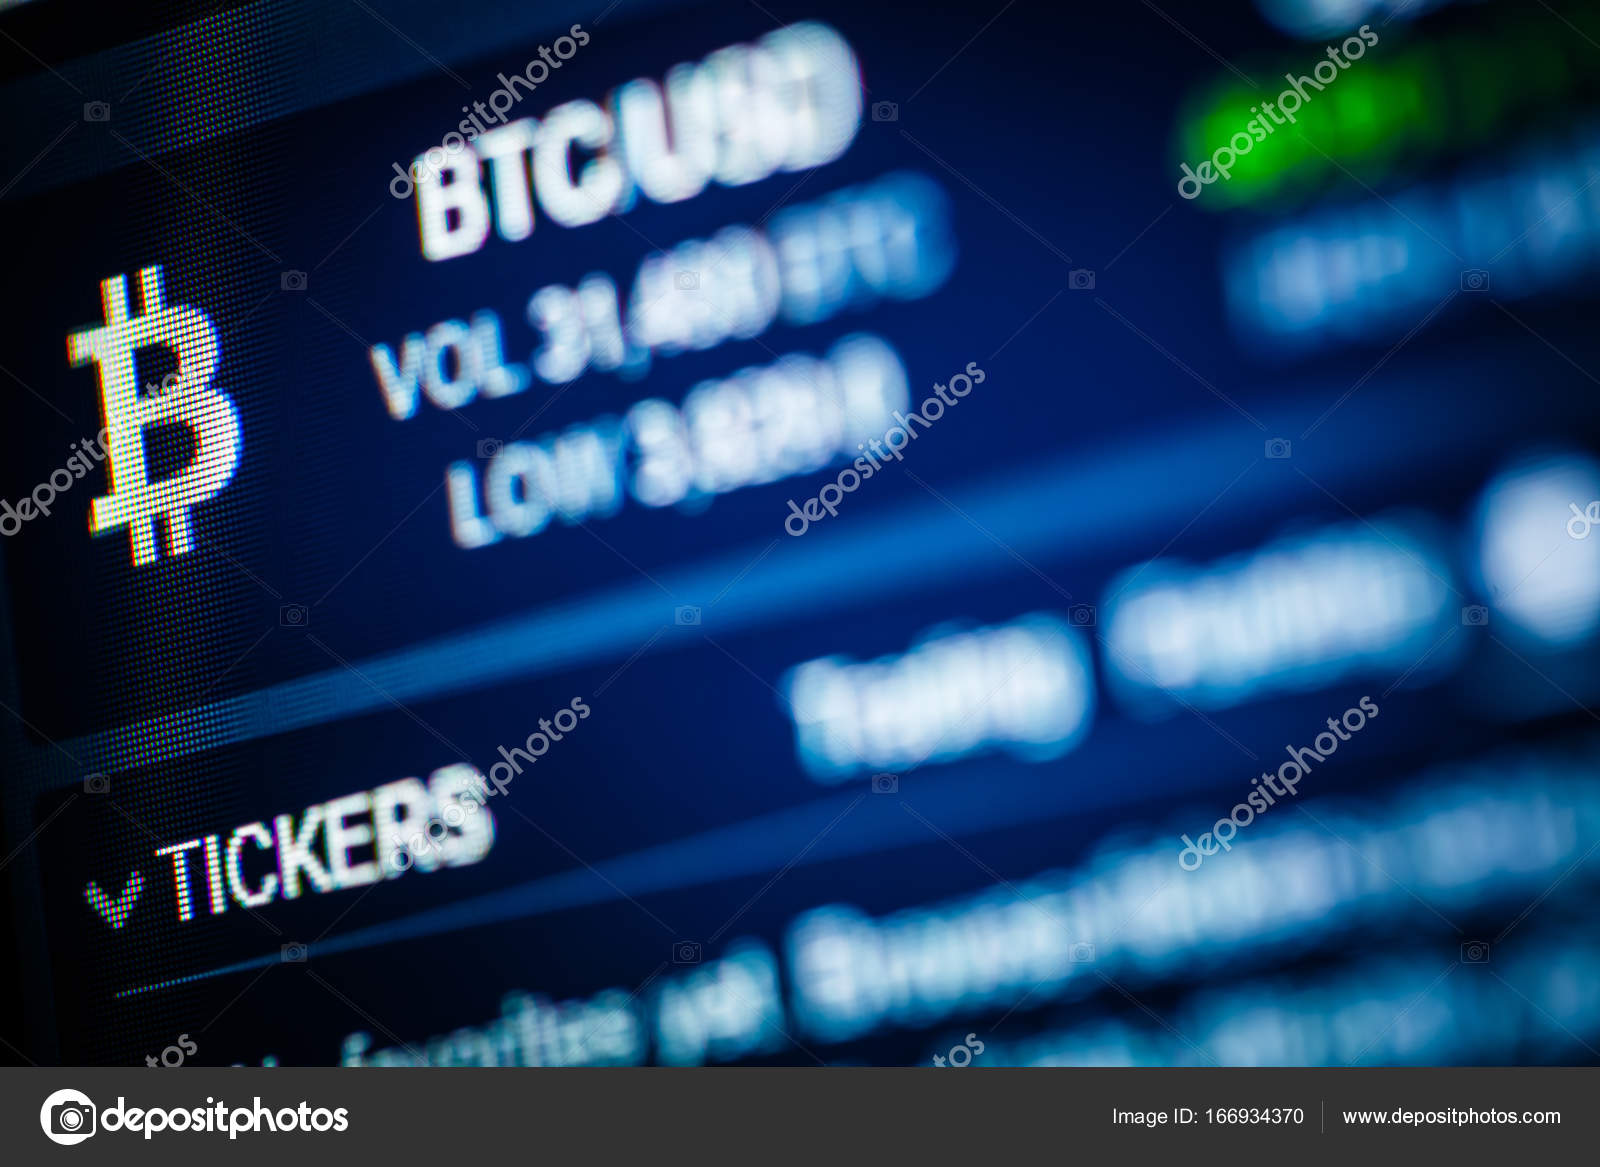 Analyzing Quotes Quoteso Stock Quote Stock Quotes Google • Hak660